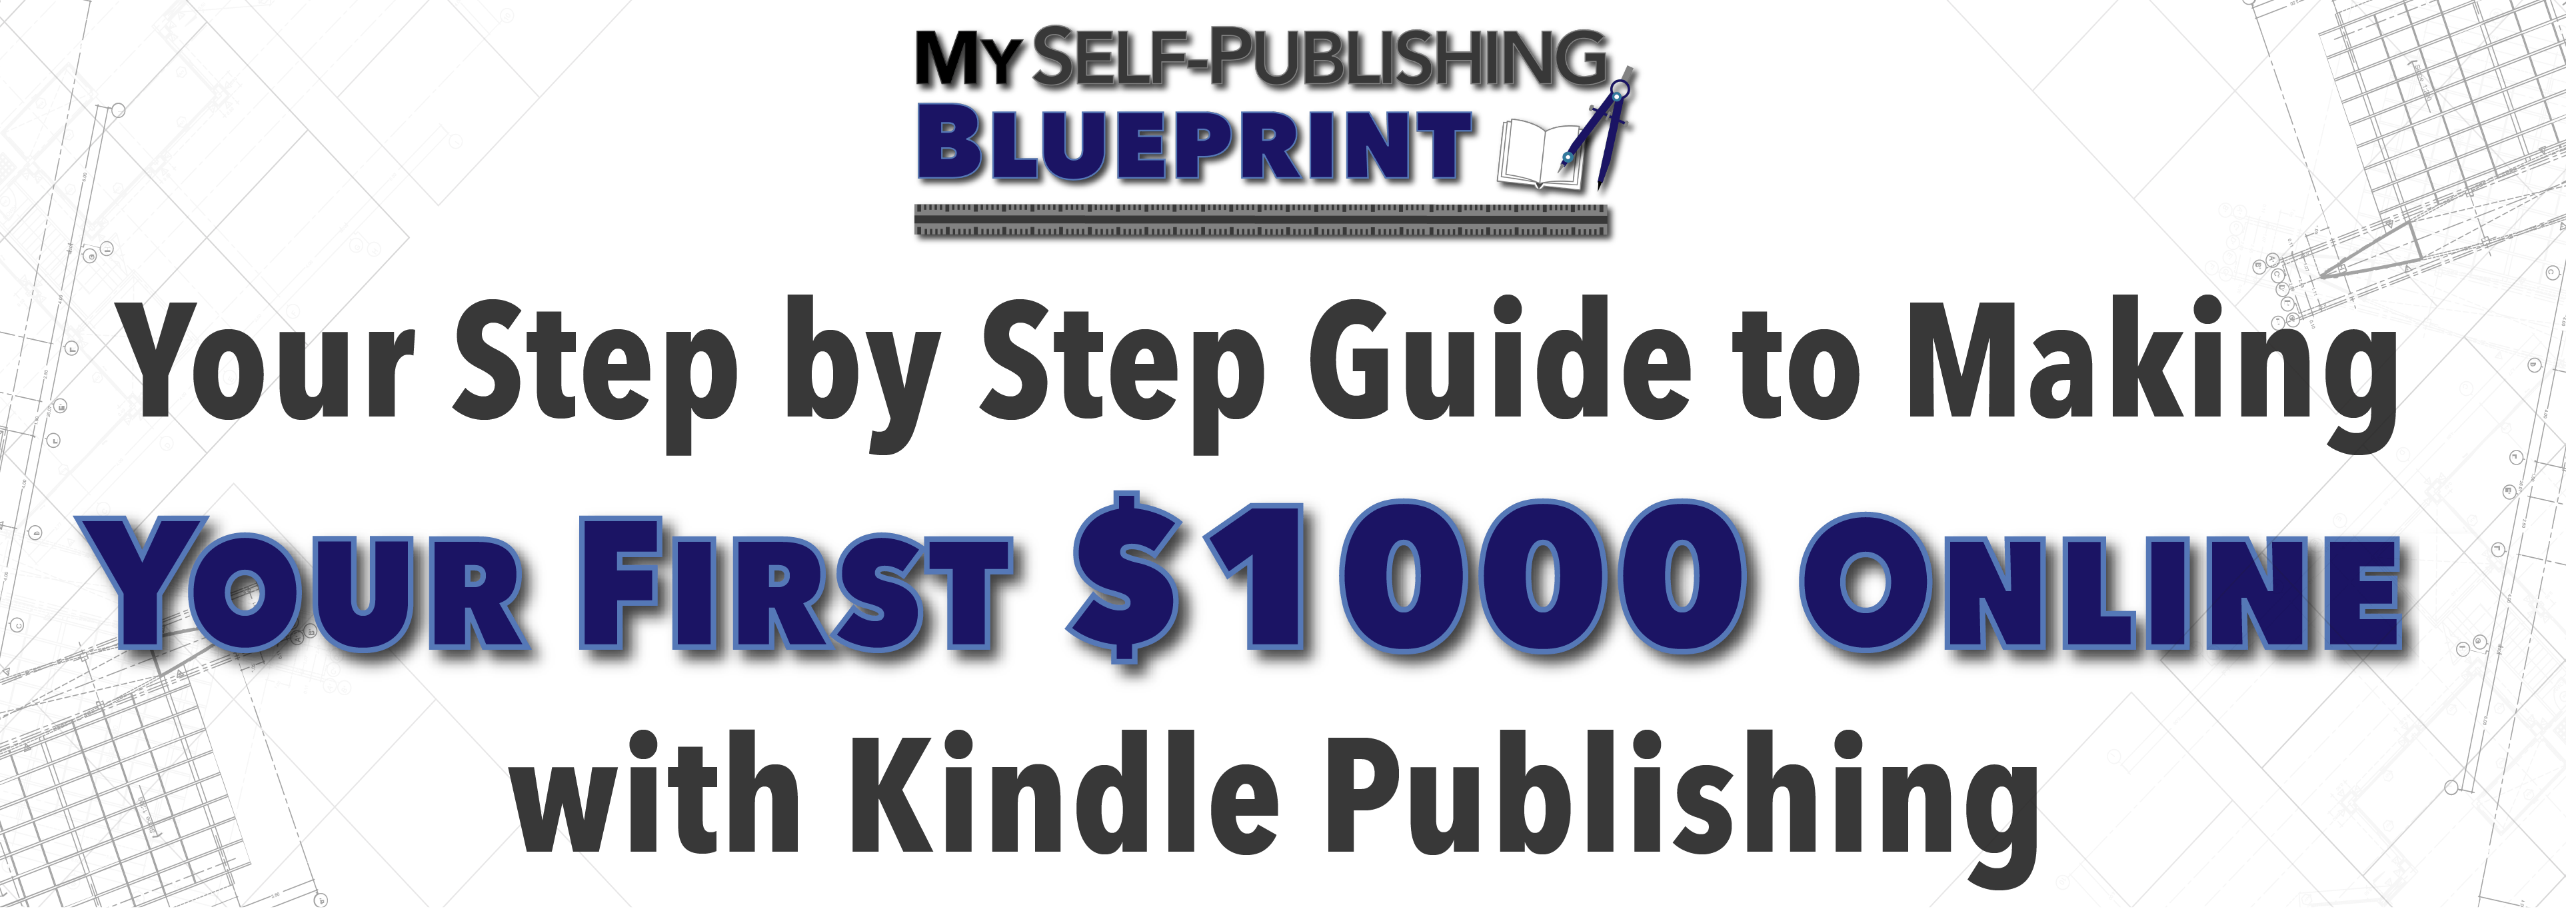 My self publishing blueprint malvernweather